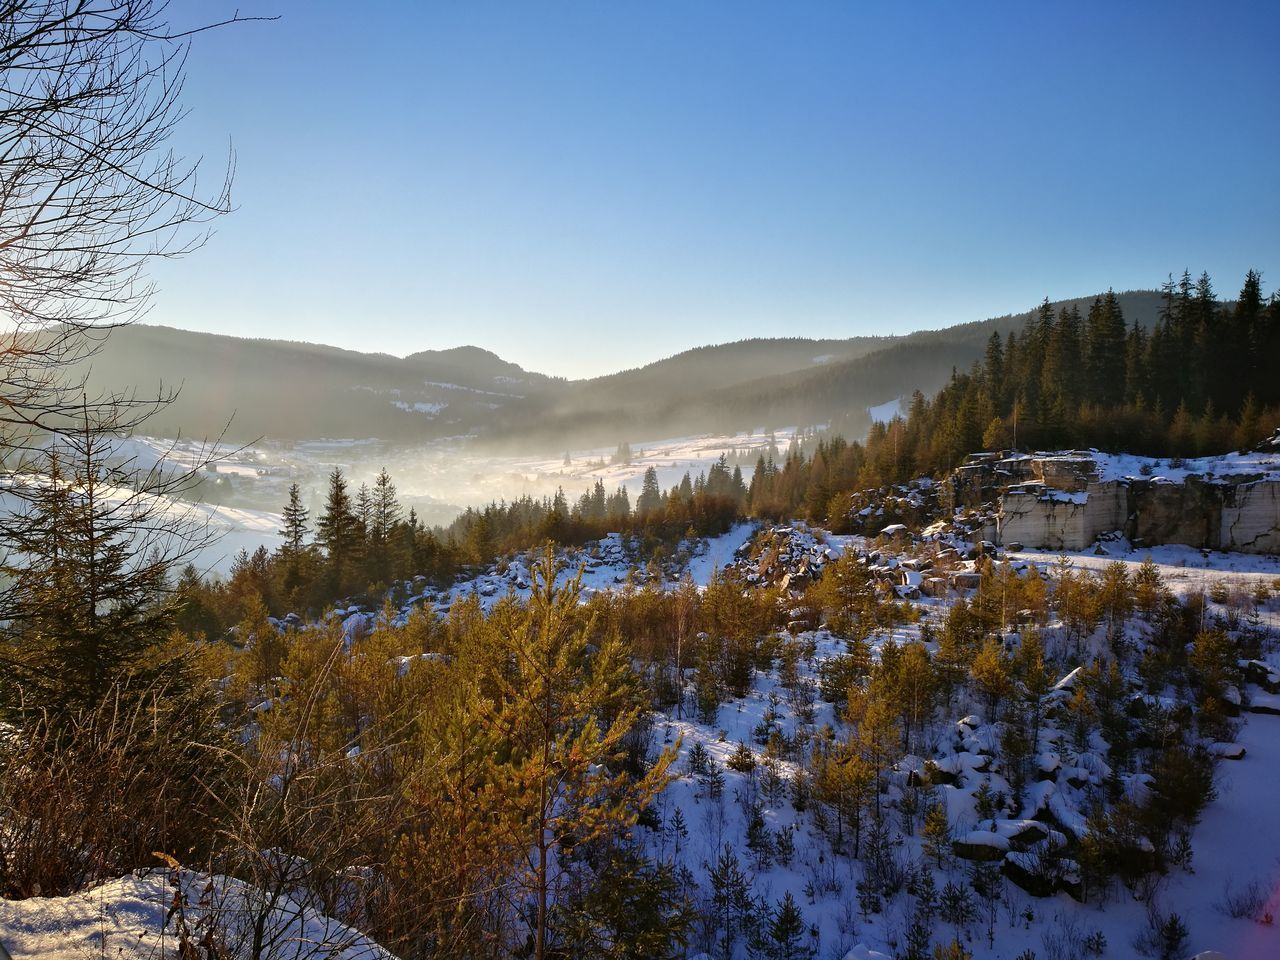 winter, cold temperature, snow, nature, tranquility, tranquil scene, beauty in nature, scenics, mountain, no people, outdoors, tree, clear sky, landscape, day, mountain range, sky